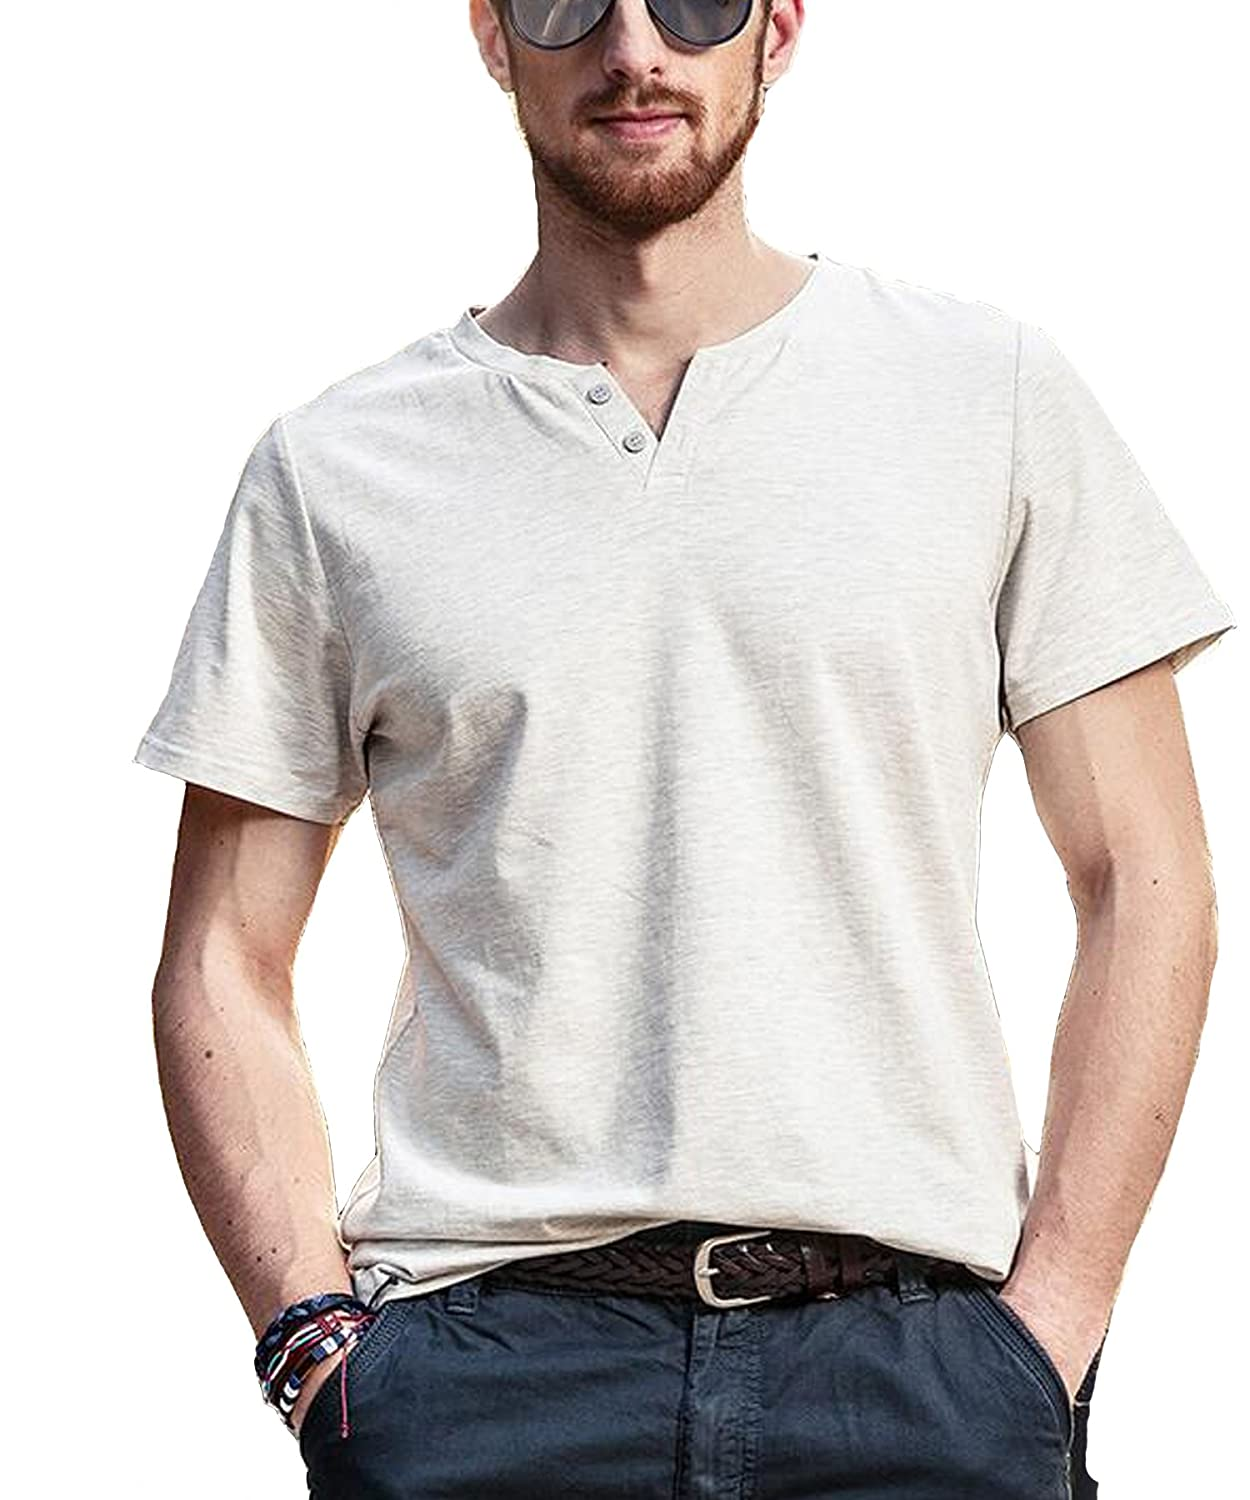 Holyrising Men T-Shirts Summer Casual V-Neck Button Short Sleeve Tees